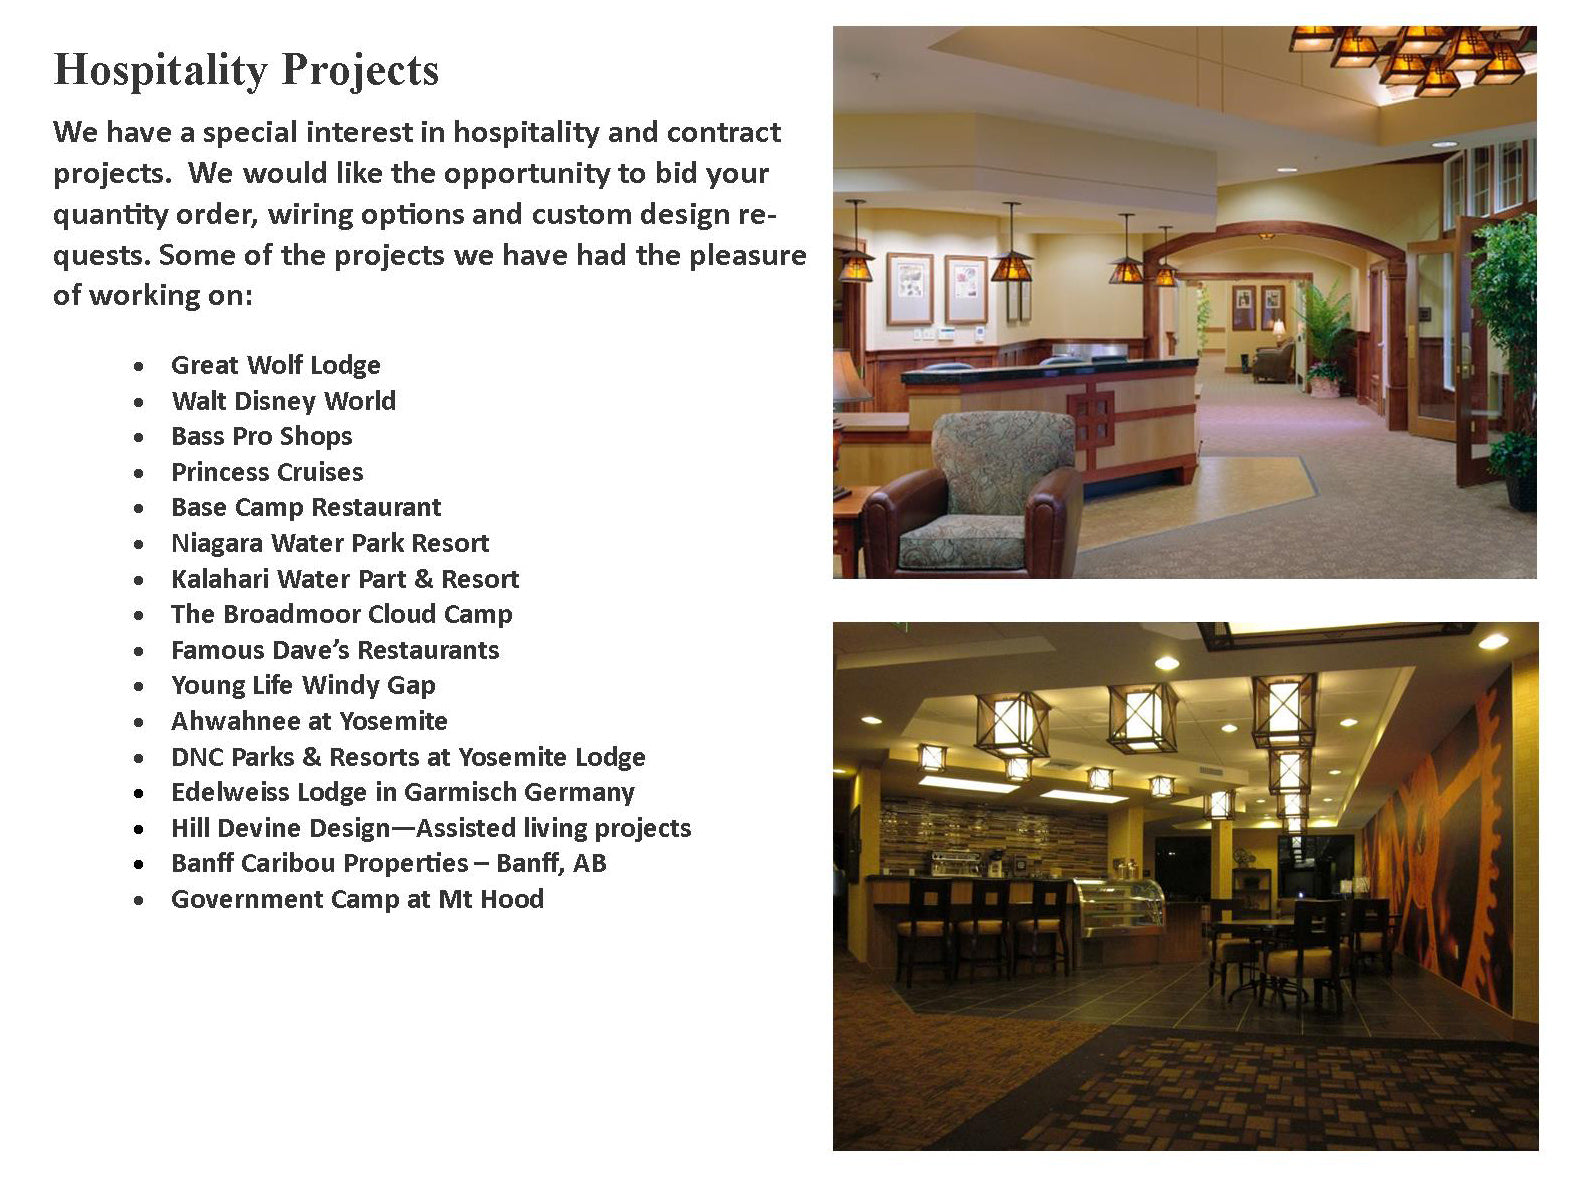 Great Wolf Lodge, Walt Disney World, Bass Pro Shops, Princess Cruises, Base Camp Restaurant, Niagara Water Park Resort, Kalahari Water Part & Resort, The Broadmoor Cloud Camp, Famous Dave's Restaurants, Young Life Windy Gap, Ahwahnee at Yosemite, DNC Parks & Resorts at Yosemite Lodge, Edelweiss Lodge in Garmisch Germany, Hill Devine Design Assisted living projects, Banff Caribou Properties Banff AB, Government Camp at Mt Hood, Xanterra Parks and Resorts